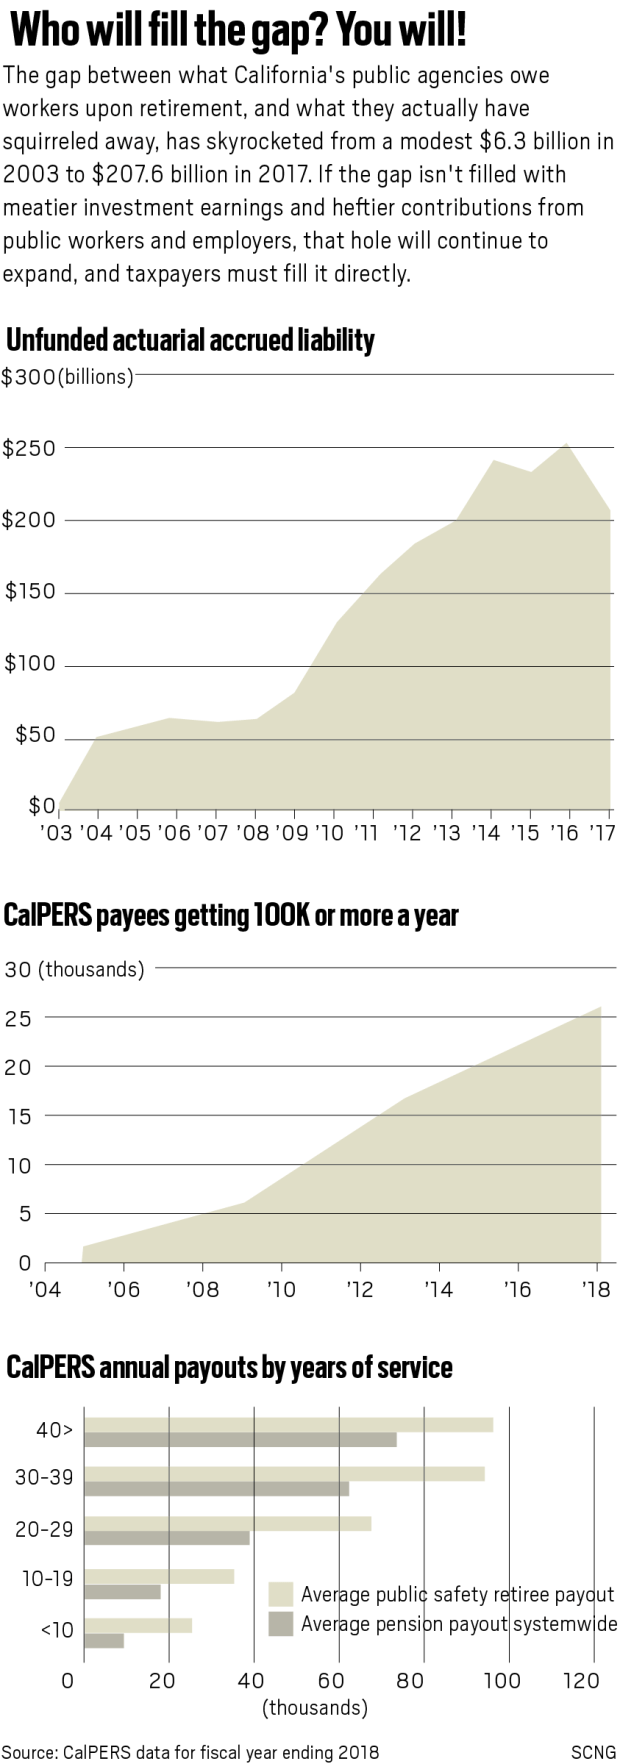 Number of public retirees in $100K Club skyrockets, but they're just part of the burden on California pension system